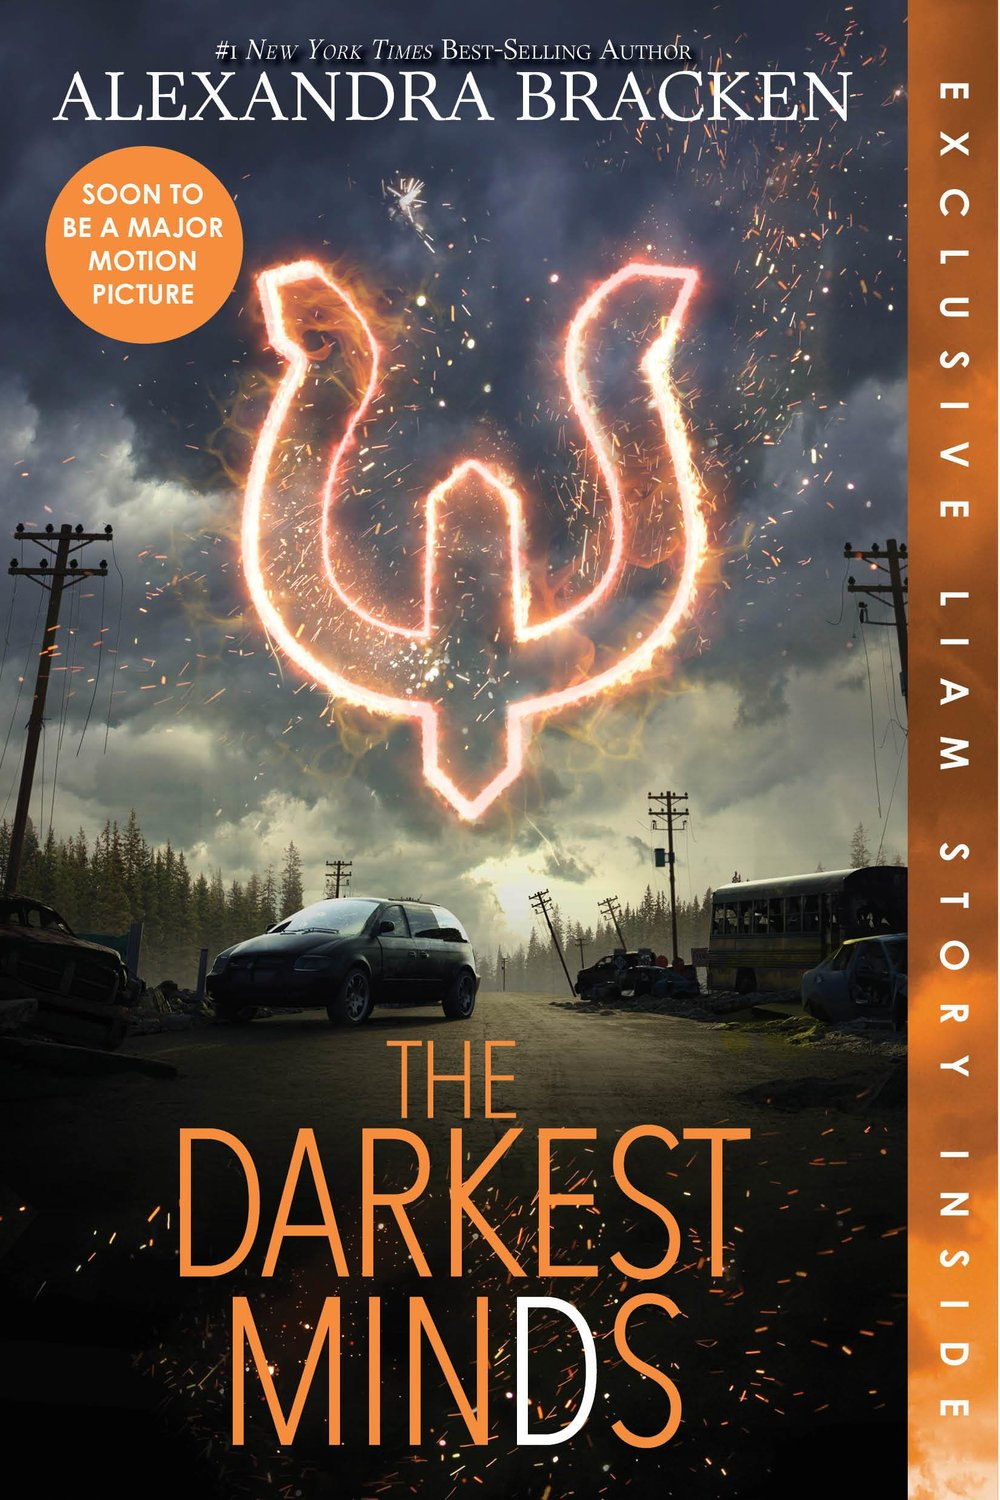 darkest-minds-cover-1.jpg